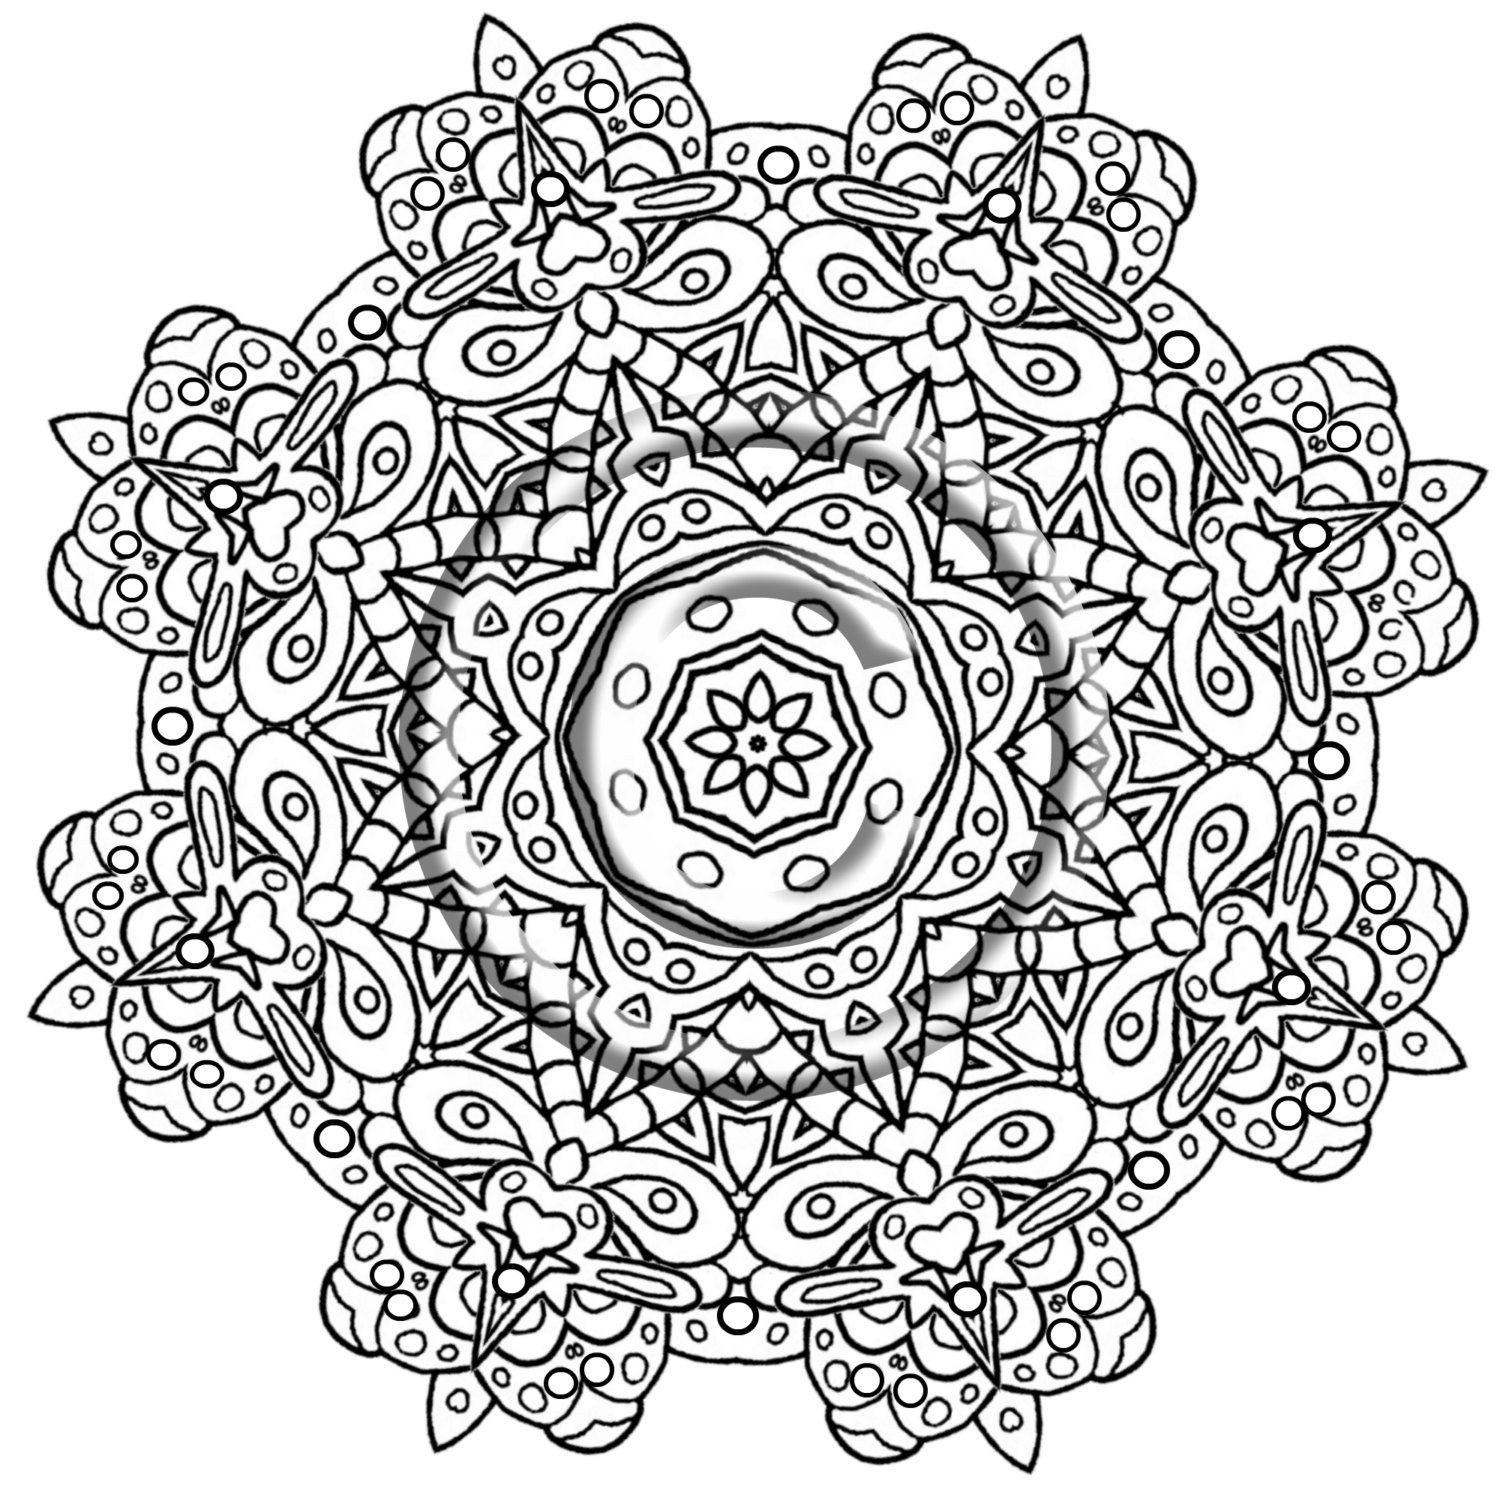 intricate mandala coloring pages free - photo#31